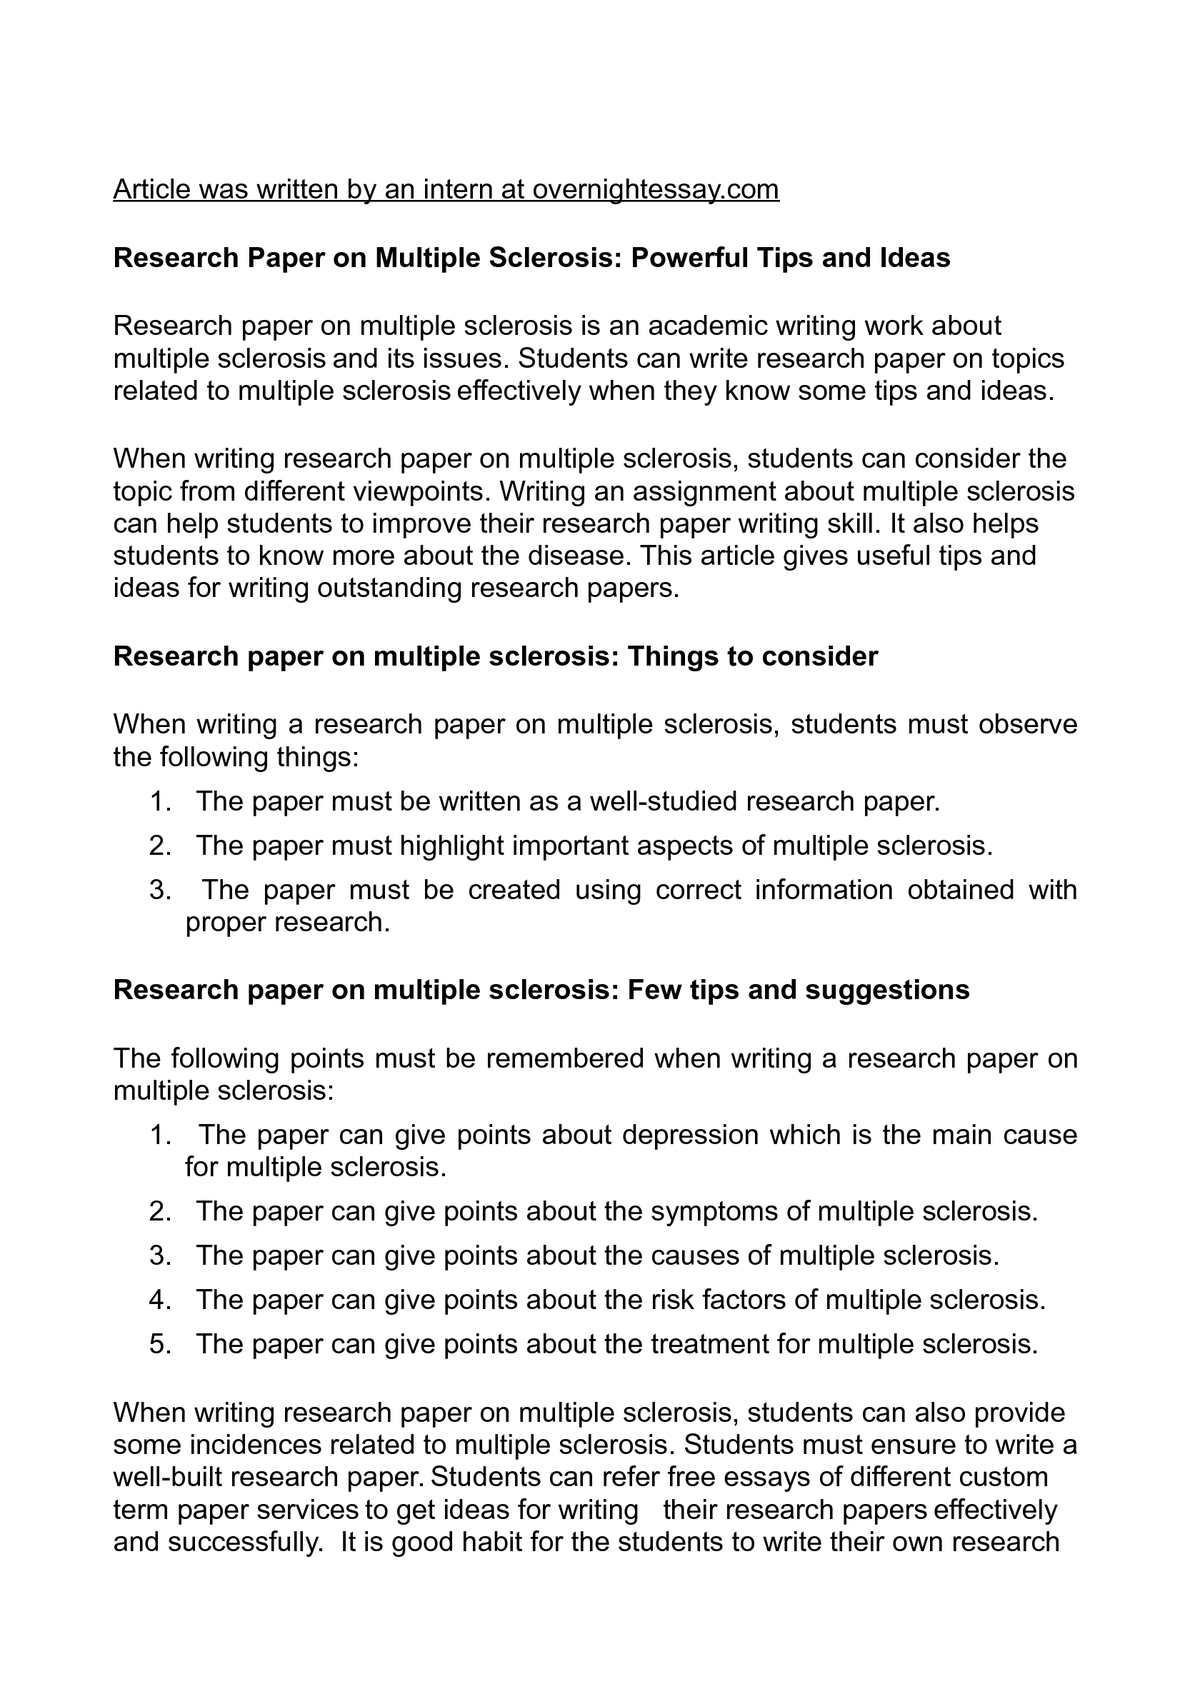 015 Research Paper How To Write Breathtaking A Introduction Apa Good Hook Statement For Full